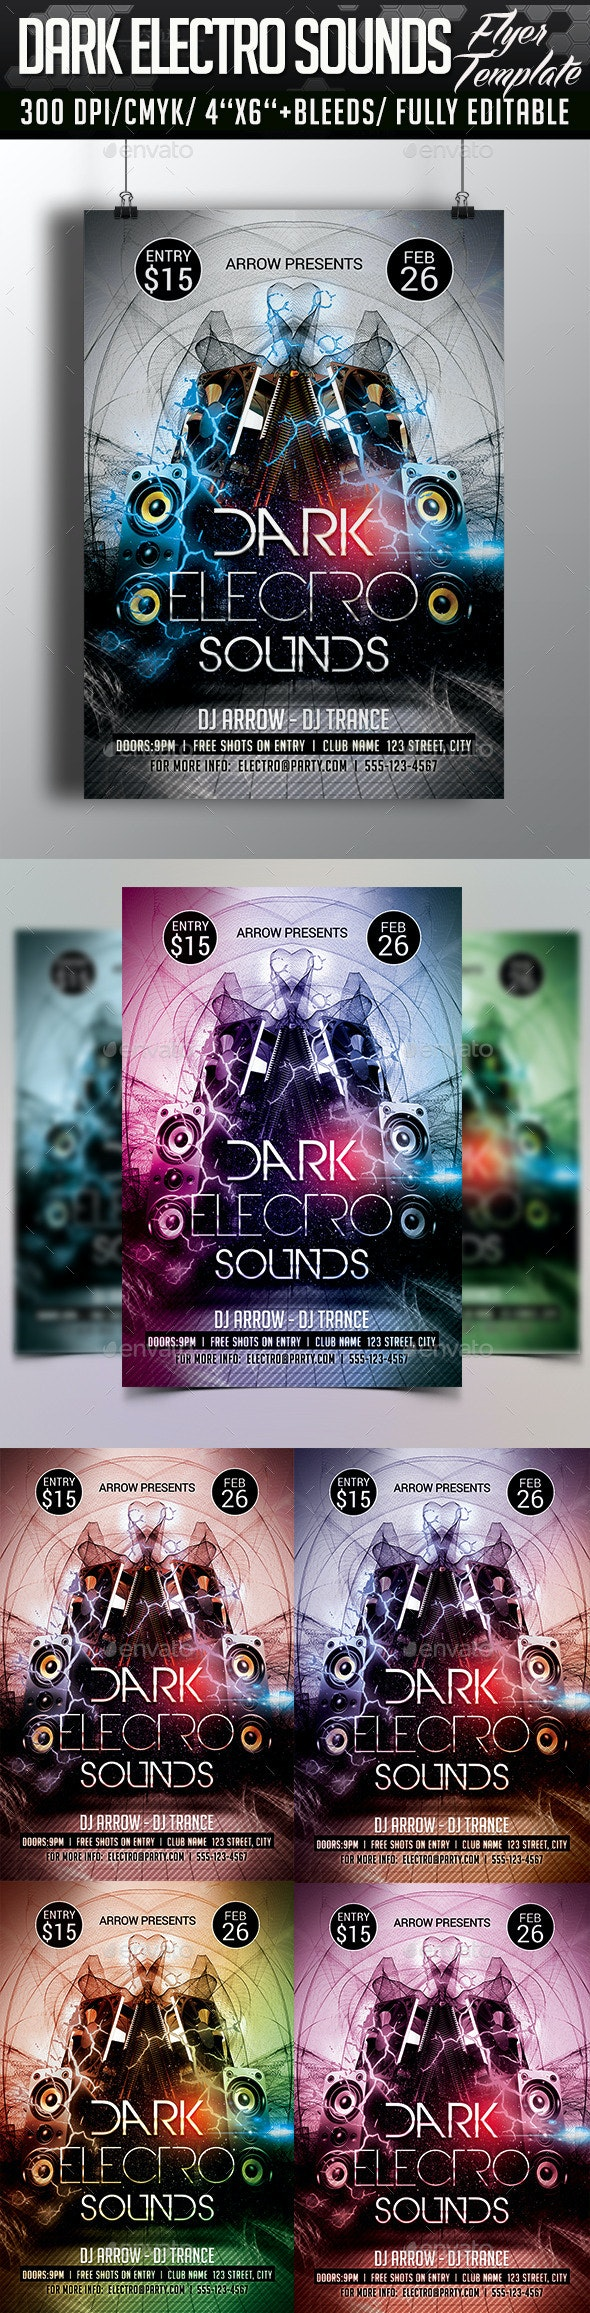 Dark Electro Sounds Flyer Template - Clubs & Parties Events